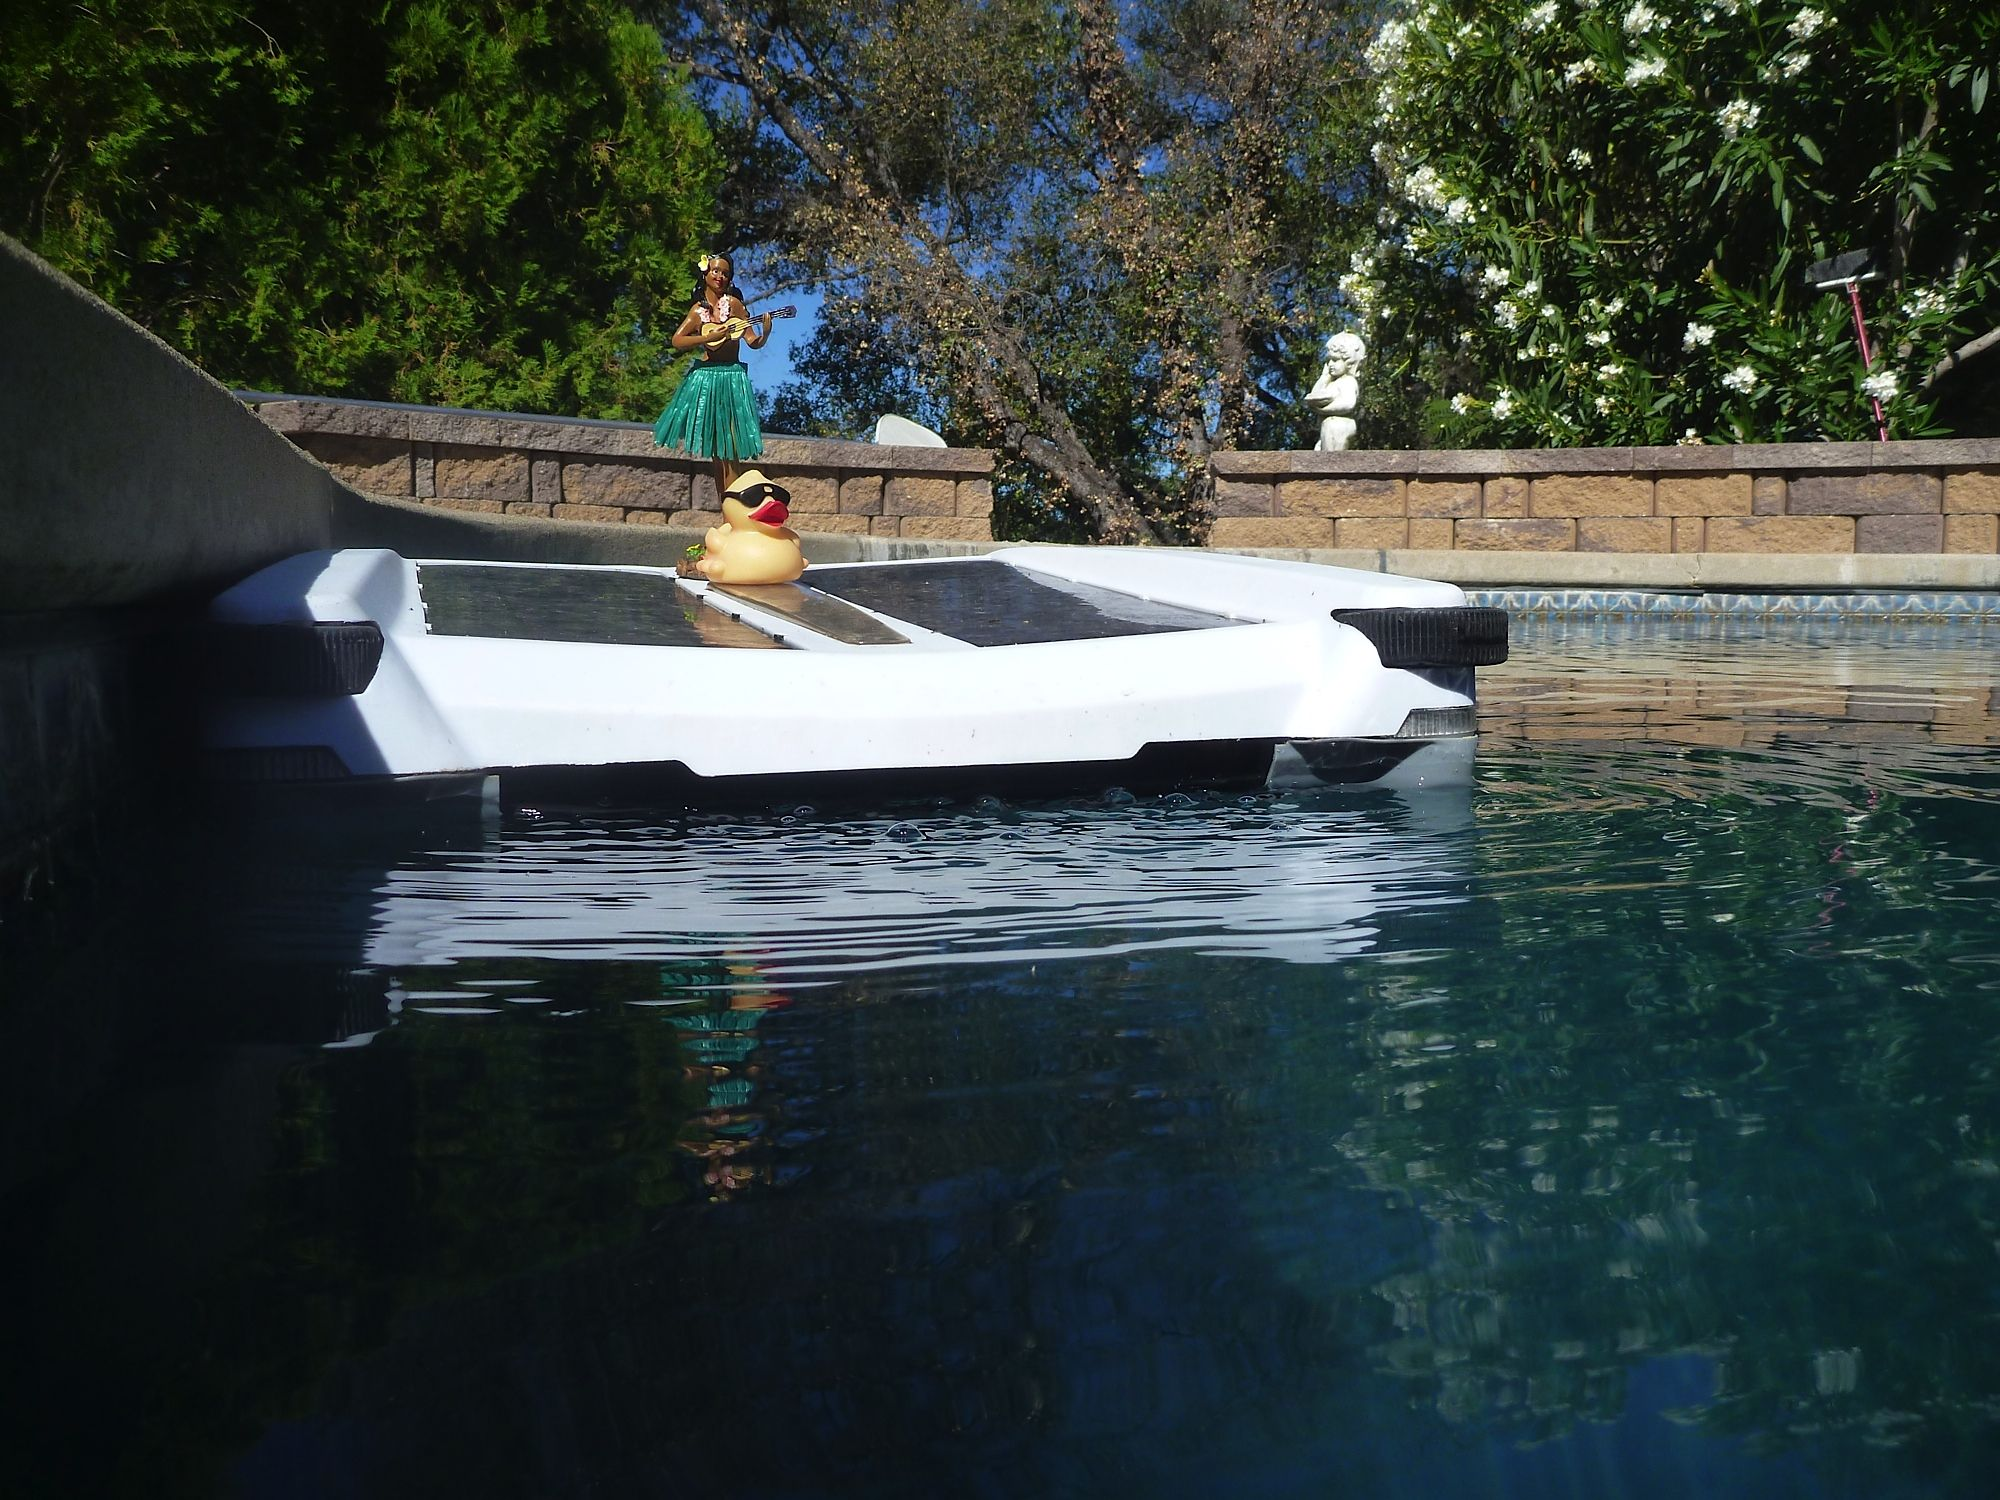 Weu0027re Revolutionizing Pool Ownership, Keeping Your Pool Clean With Solar  Power   Saving Time, Energy, ...